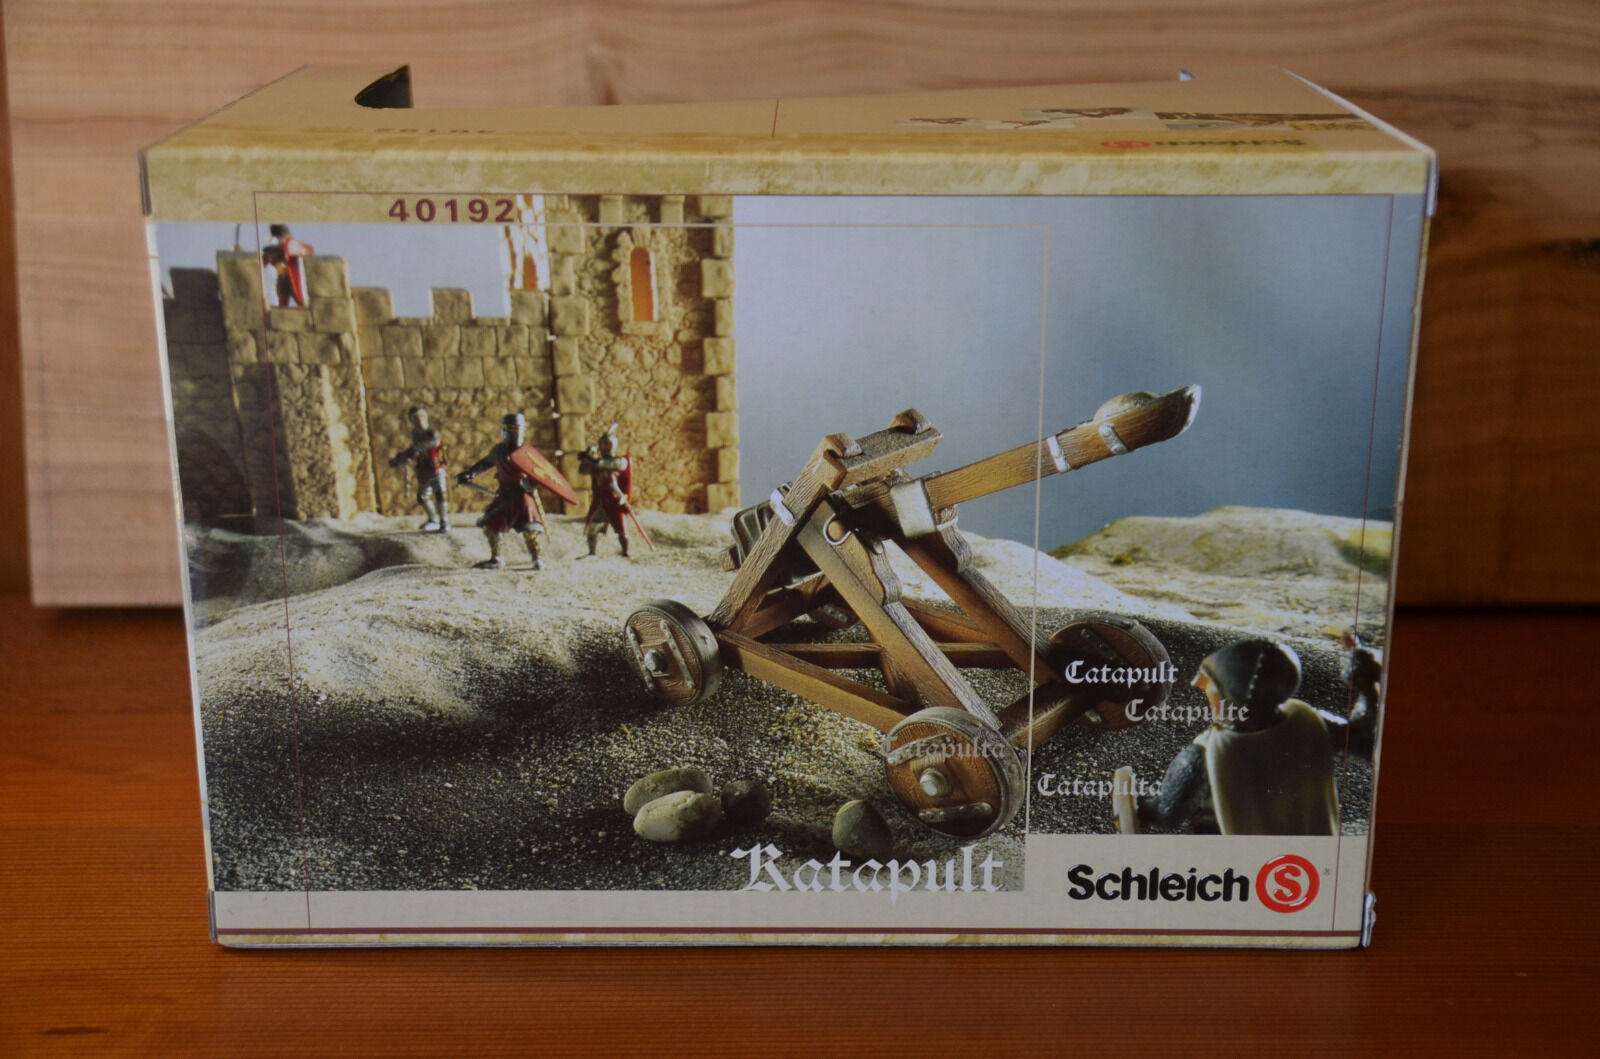 SCHLEICH 'Catapult' BOXED. BRAND NEW. World Of Knights.